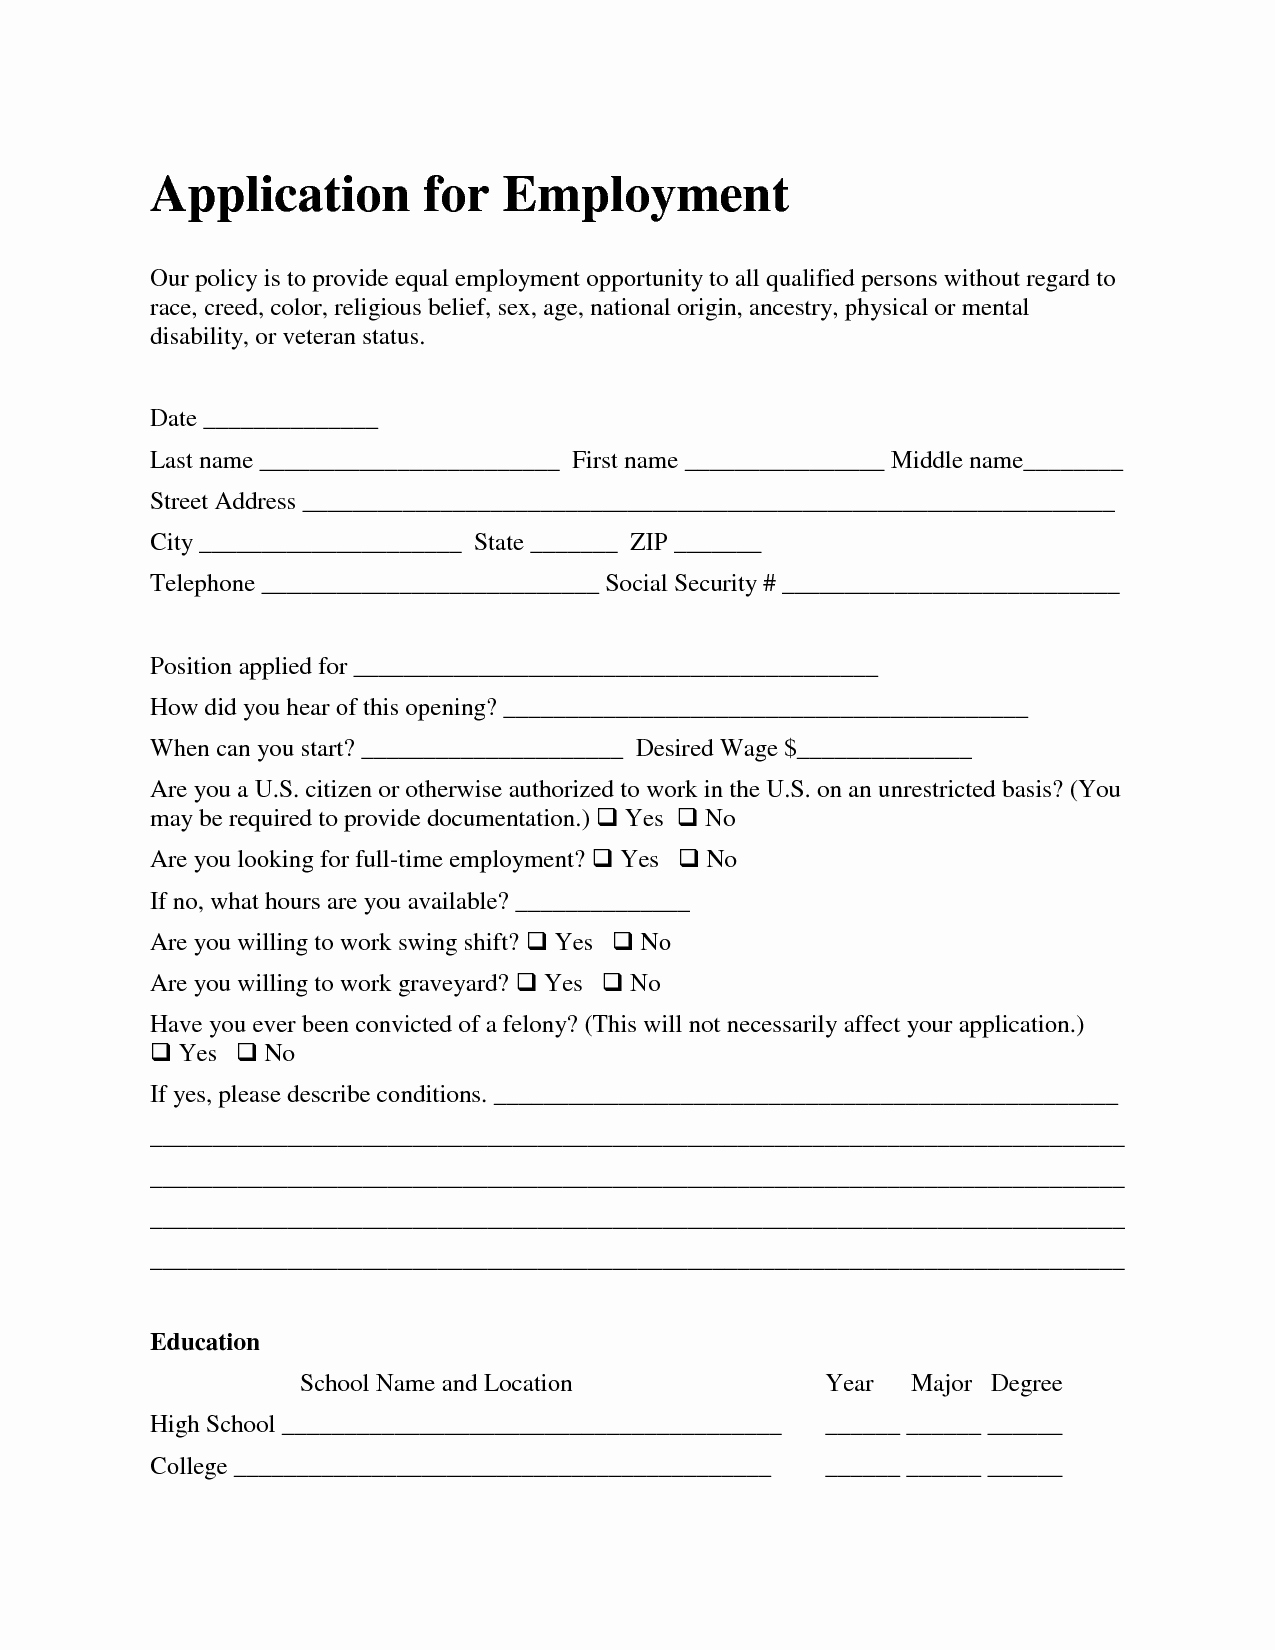 Template Job Application Azhrzltq